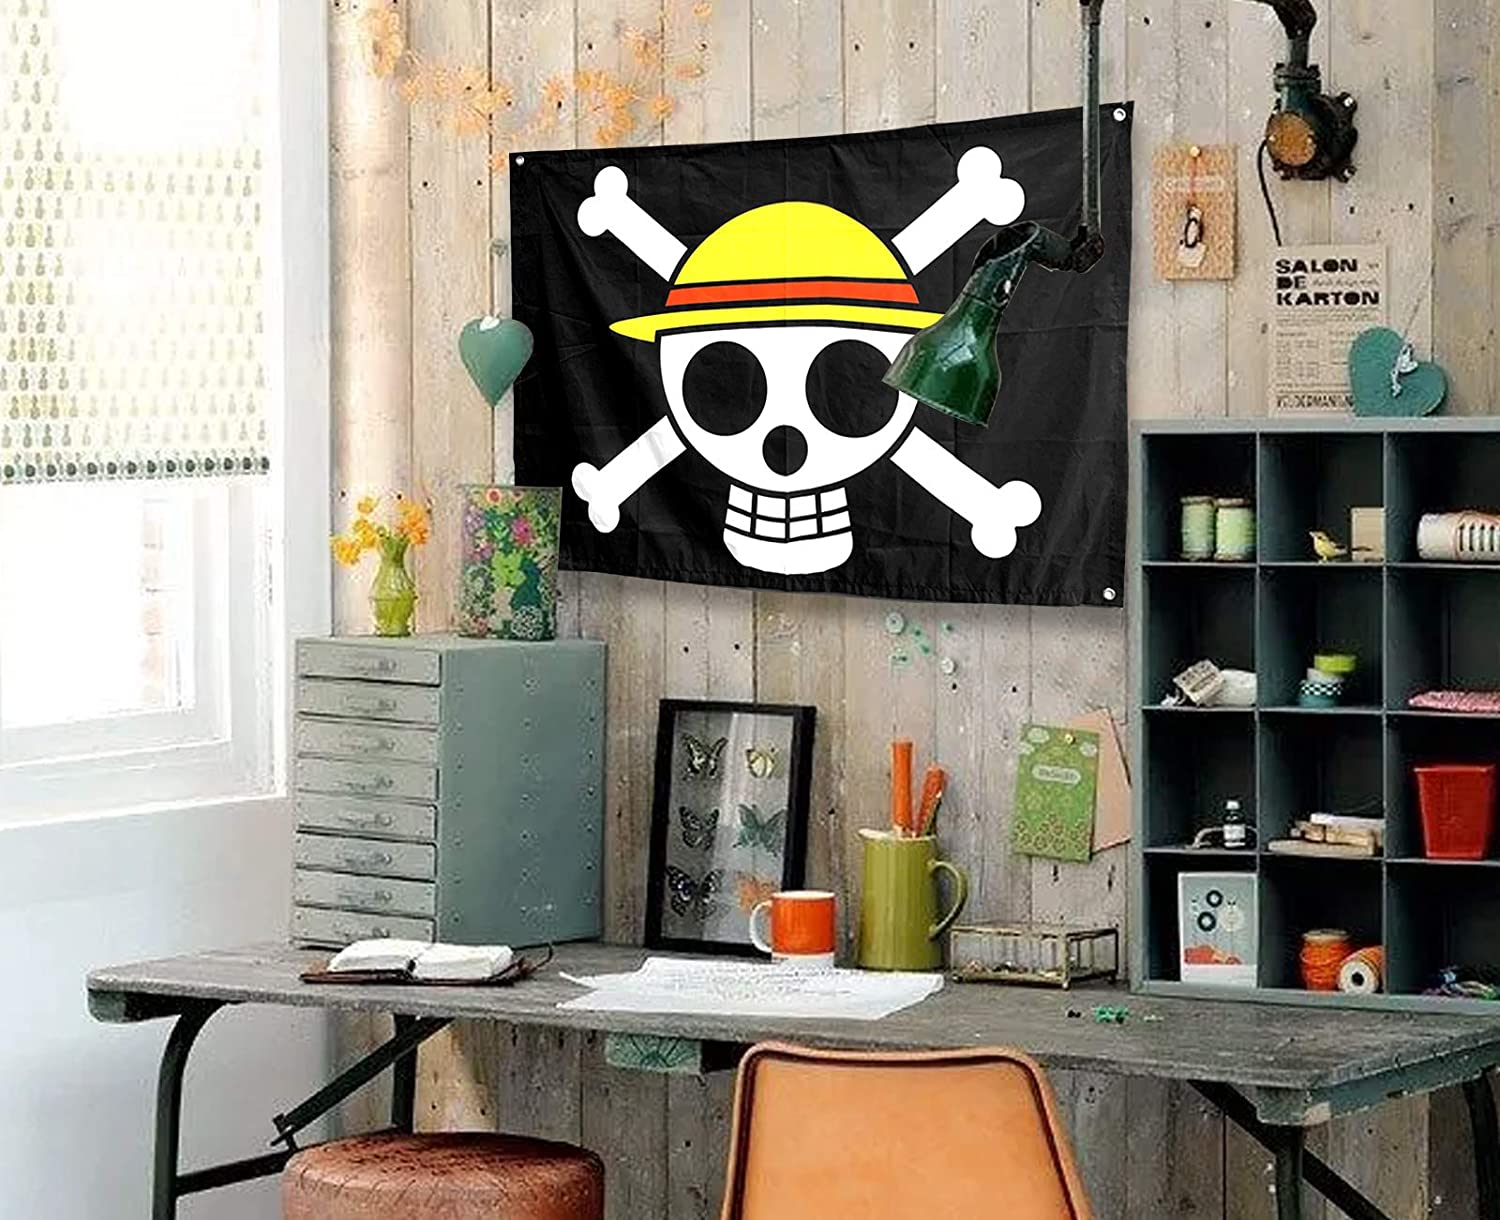 Sosolong Anime Room Decor One Piece Flag,Pirate Legion Flag,Wall Hanging Decor Boys Room Decor for Bedroom Living Room,Luffy's Straw Hat Pirate Flag (Luffy, 4330(in))